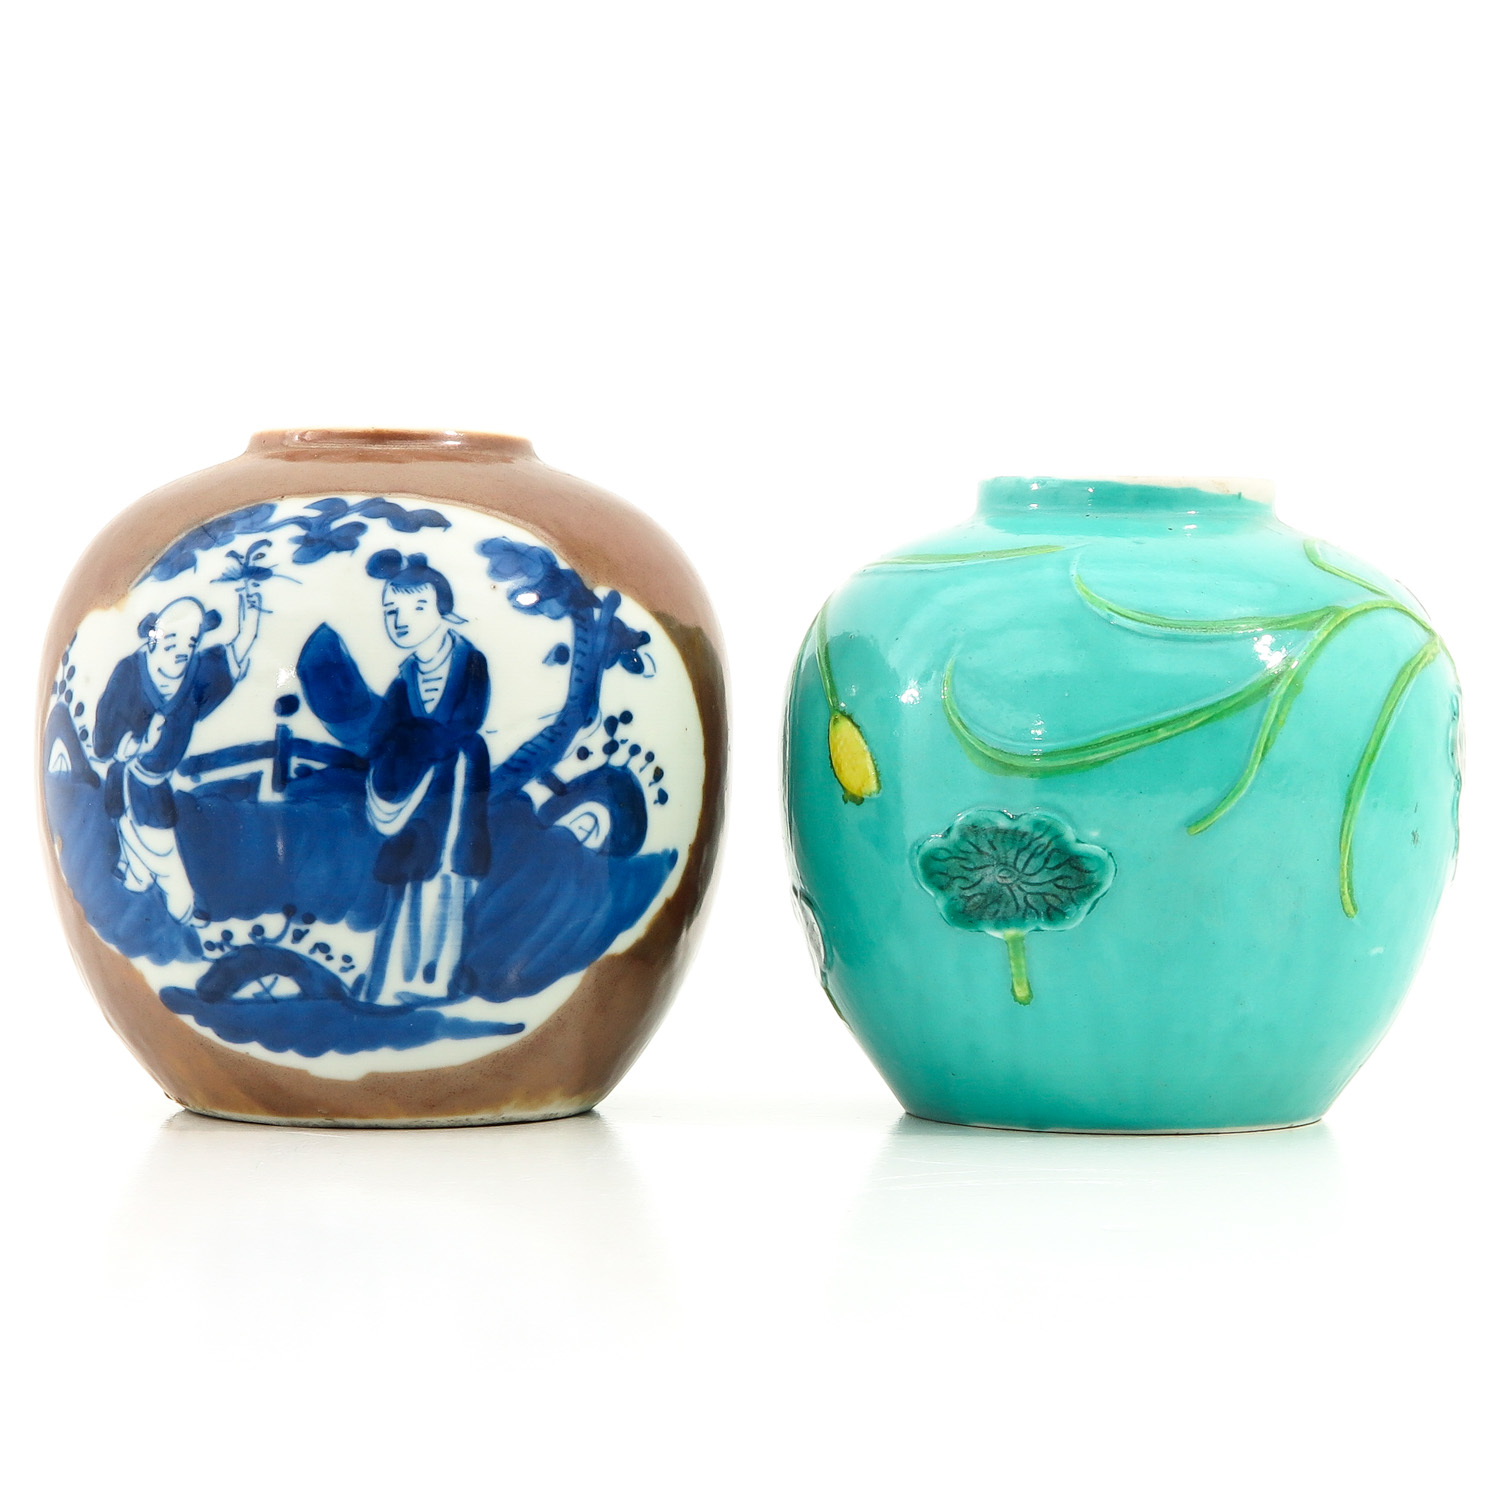 A Lot of 2 Ginger Jars - Image 3 of 10